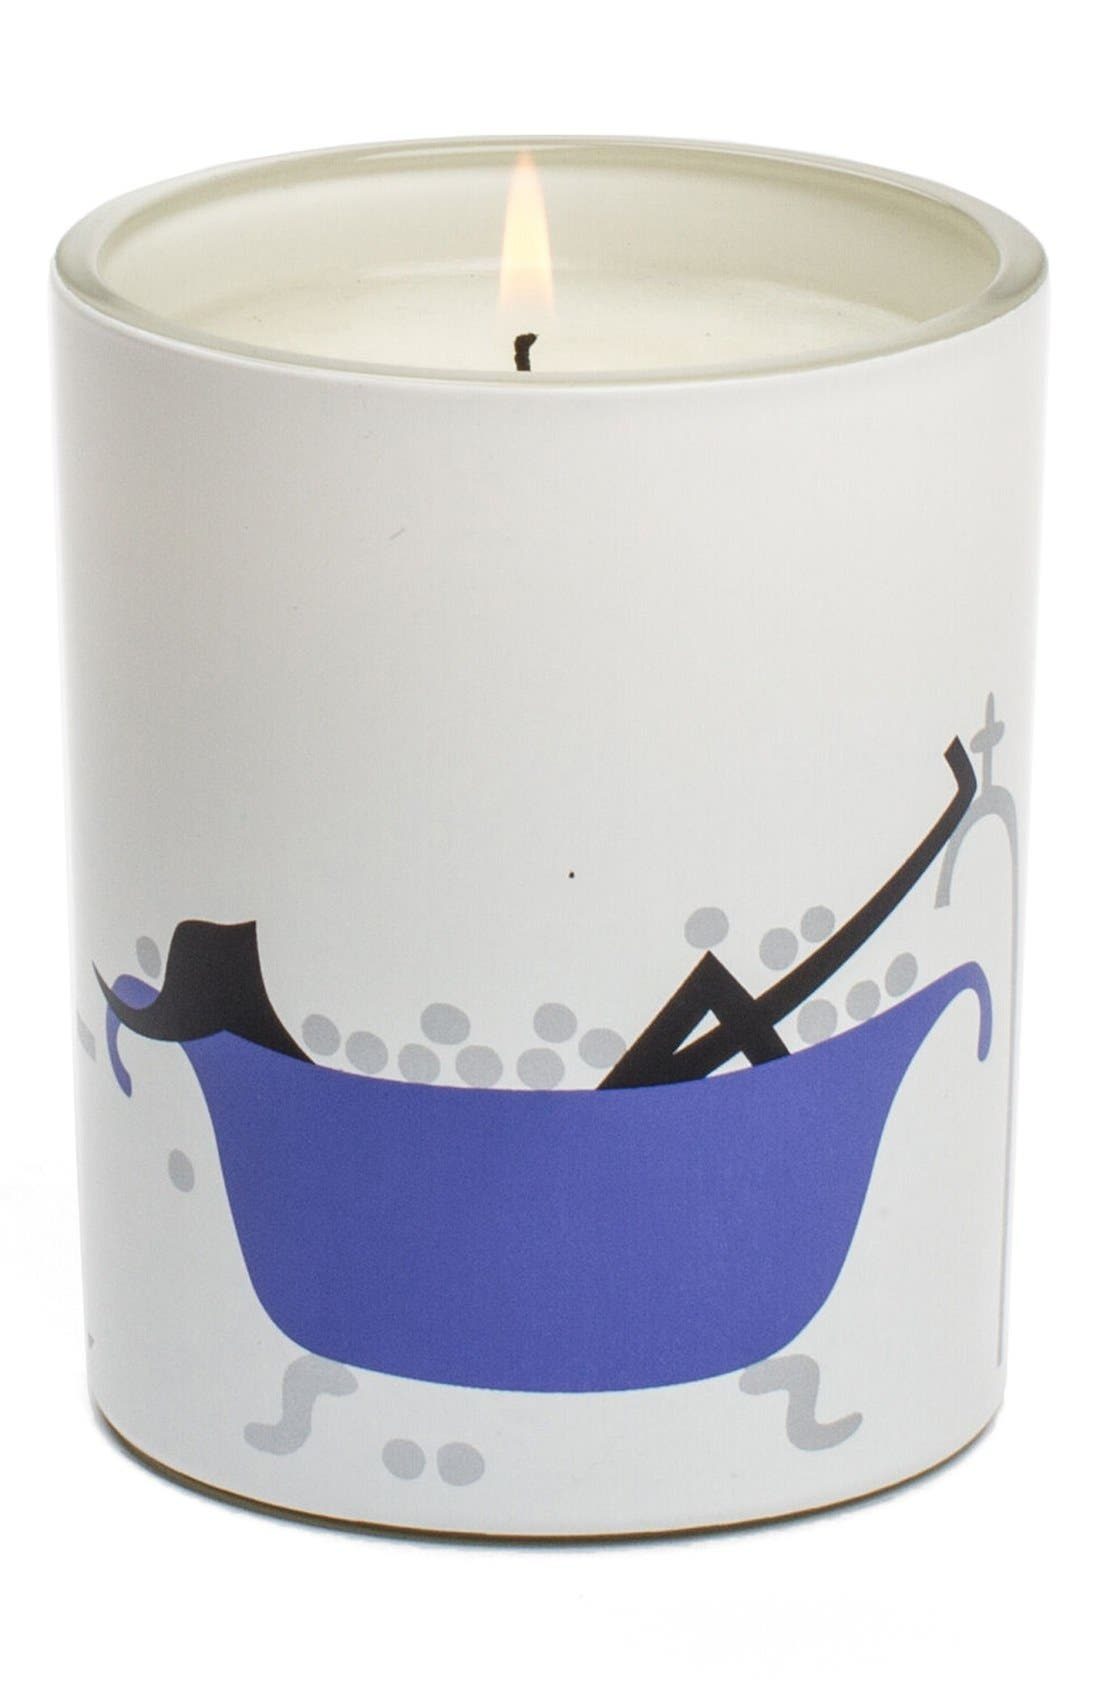 'Breathe' Scented Candle,                             Main thumbnail 1, color,                             000